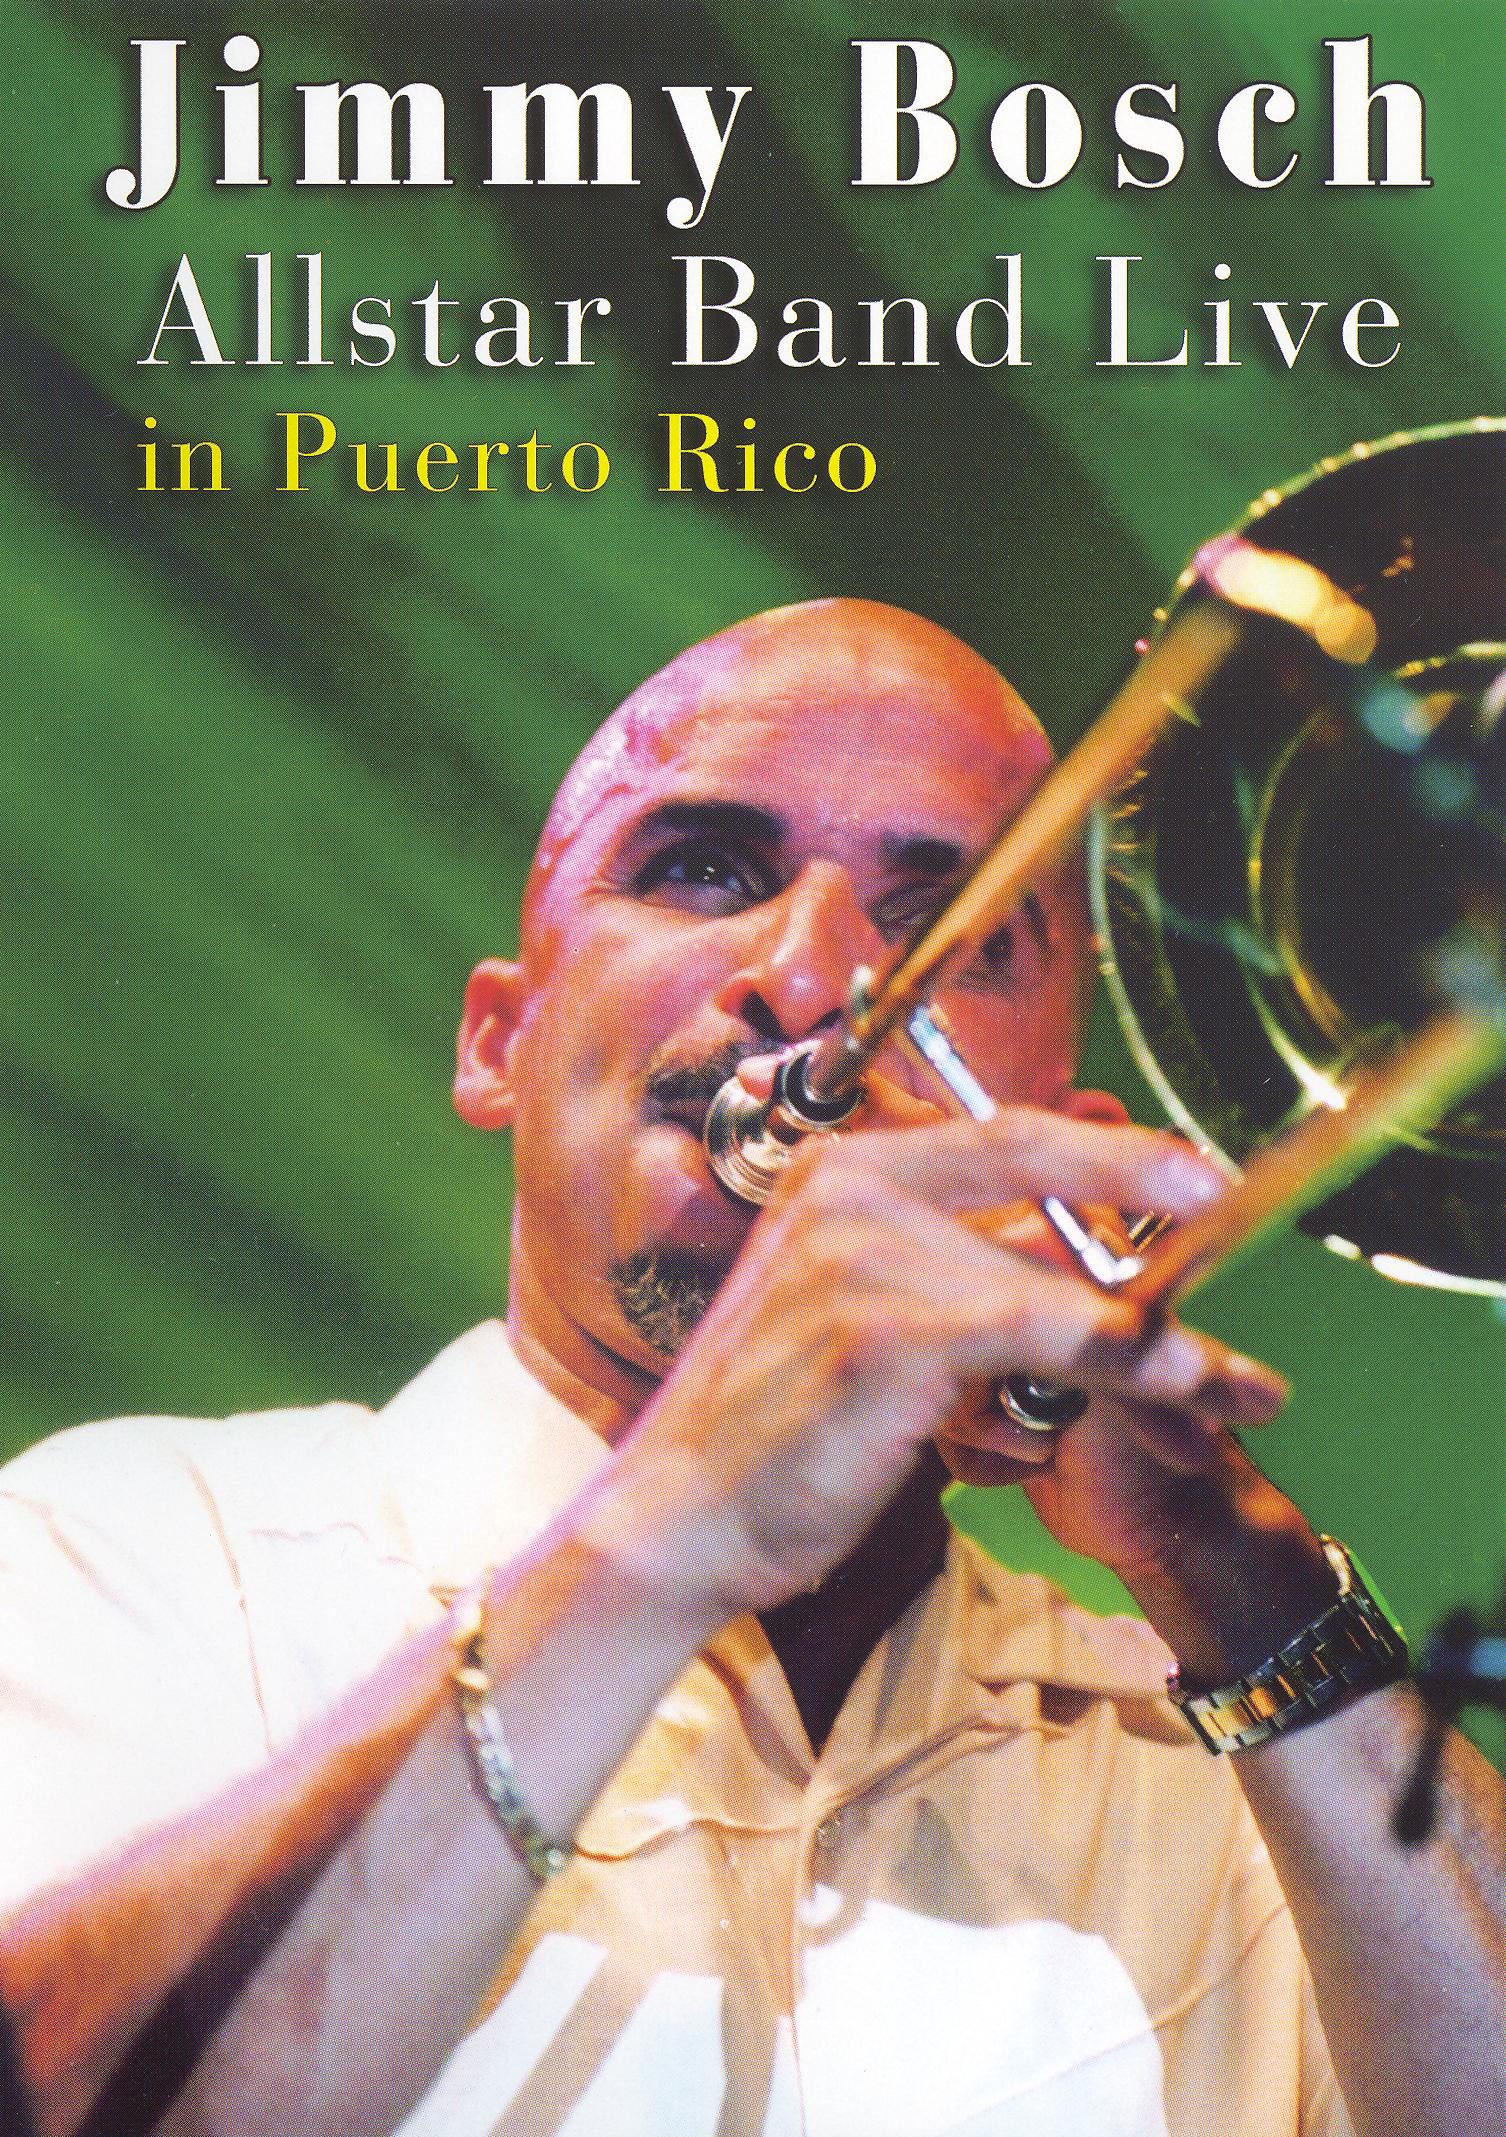 Jimmy Bosch: All-Star Band Live in Puerto Rico